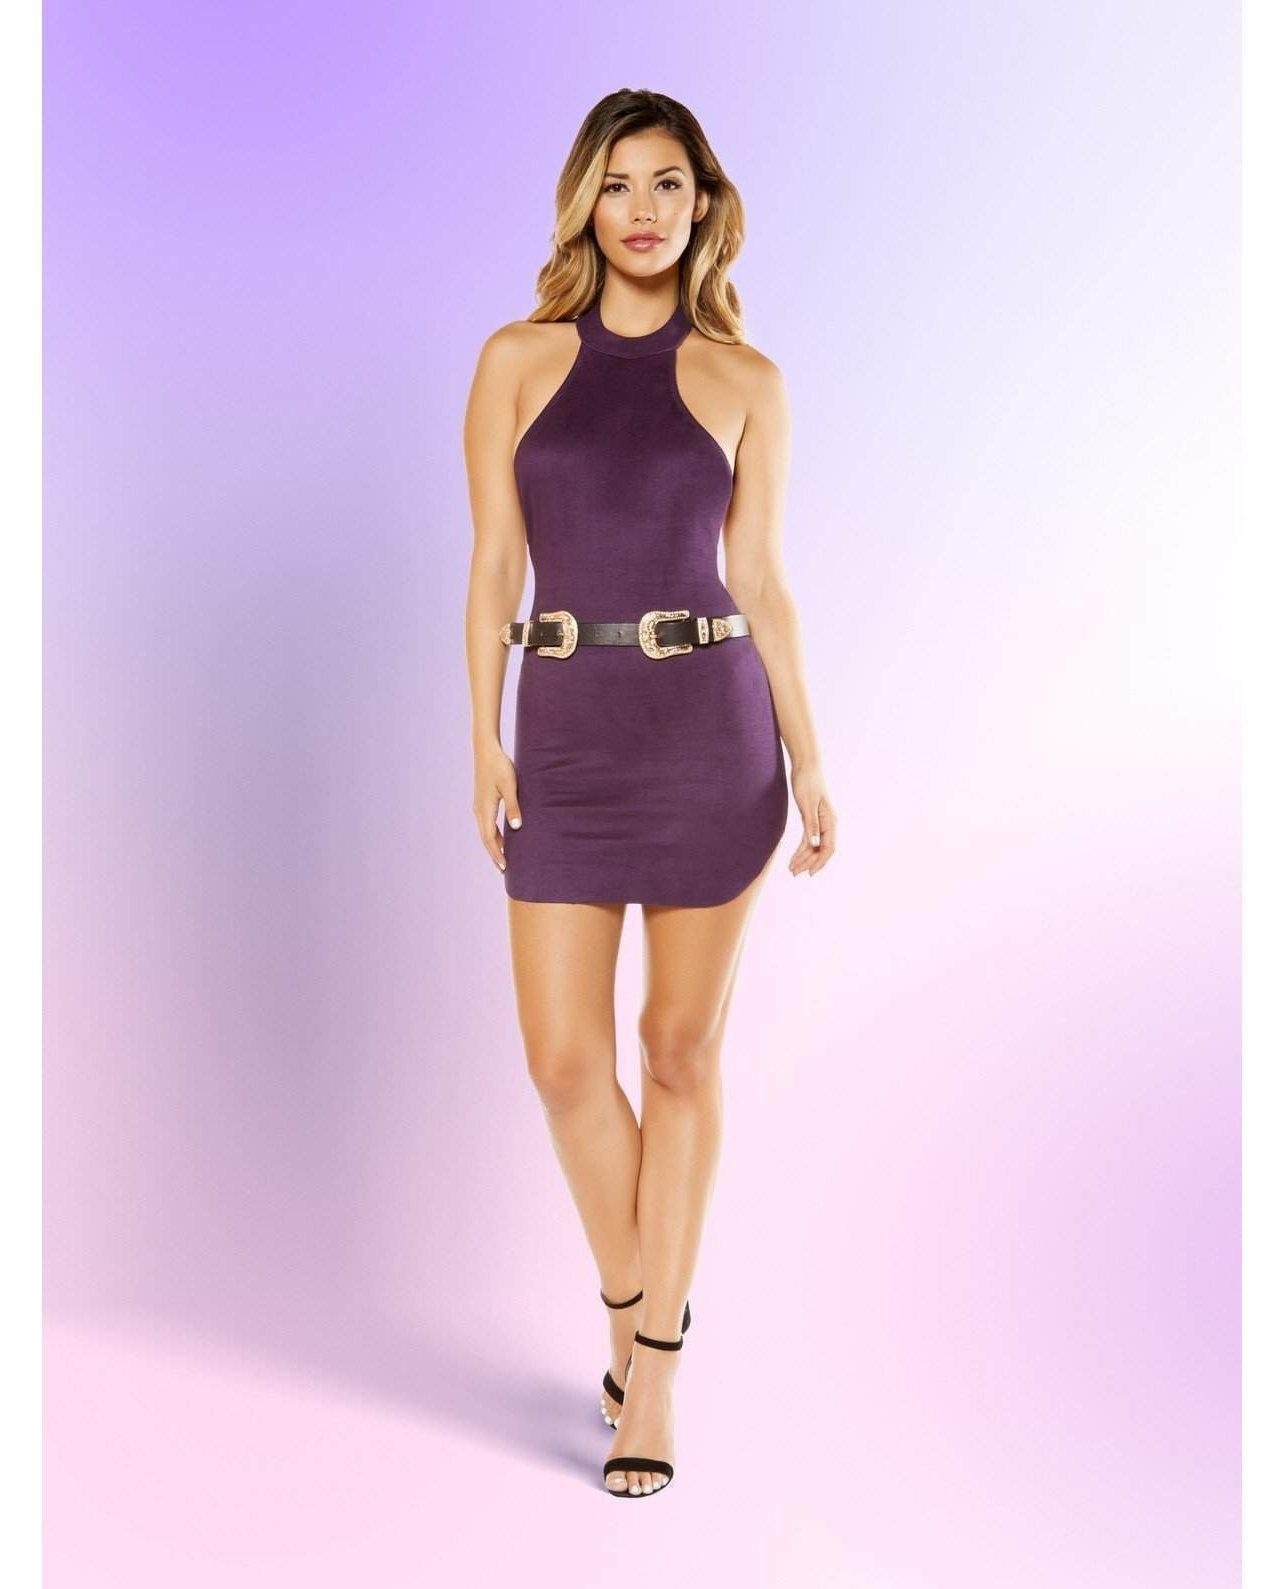 Suede Halter Neck Dress with Hook Closure-club wear-Roma Costume-small-purple-Nakees